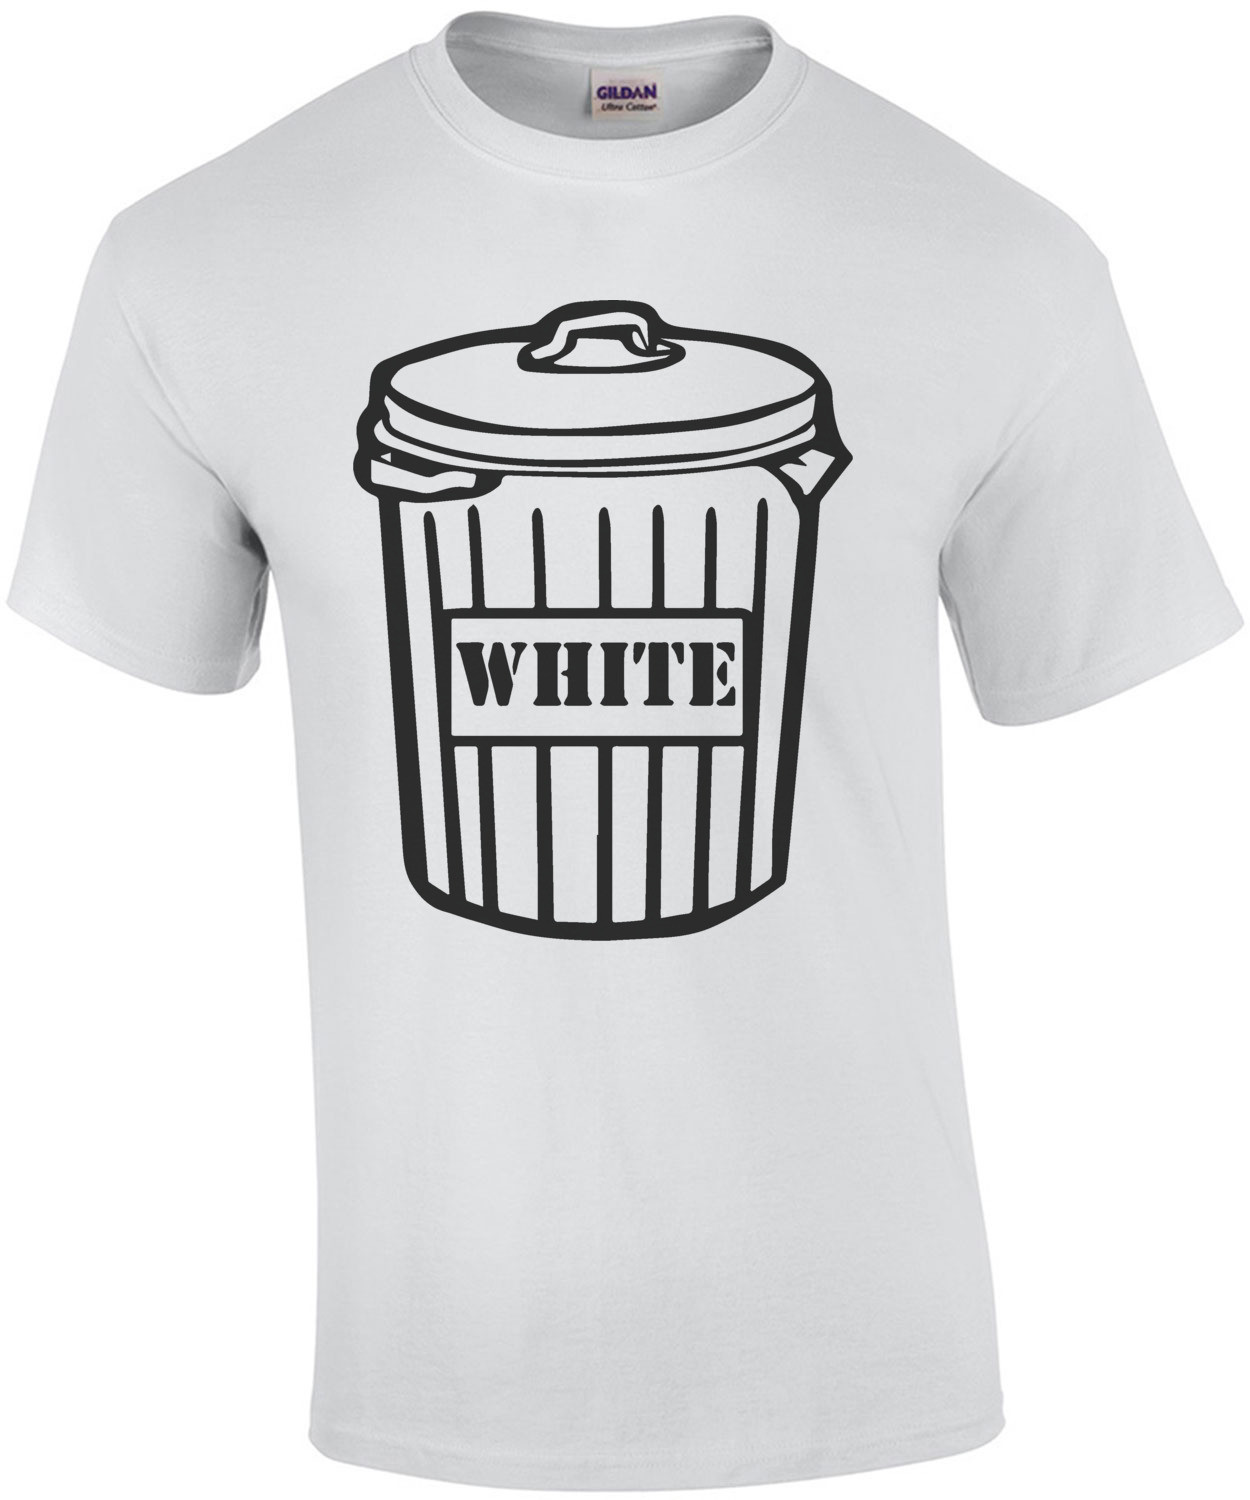 White Trash - Funny T-Shirt